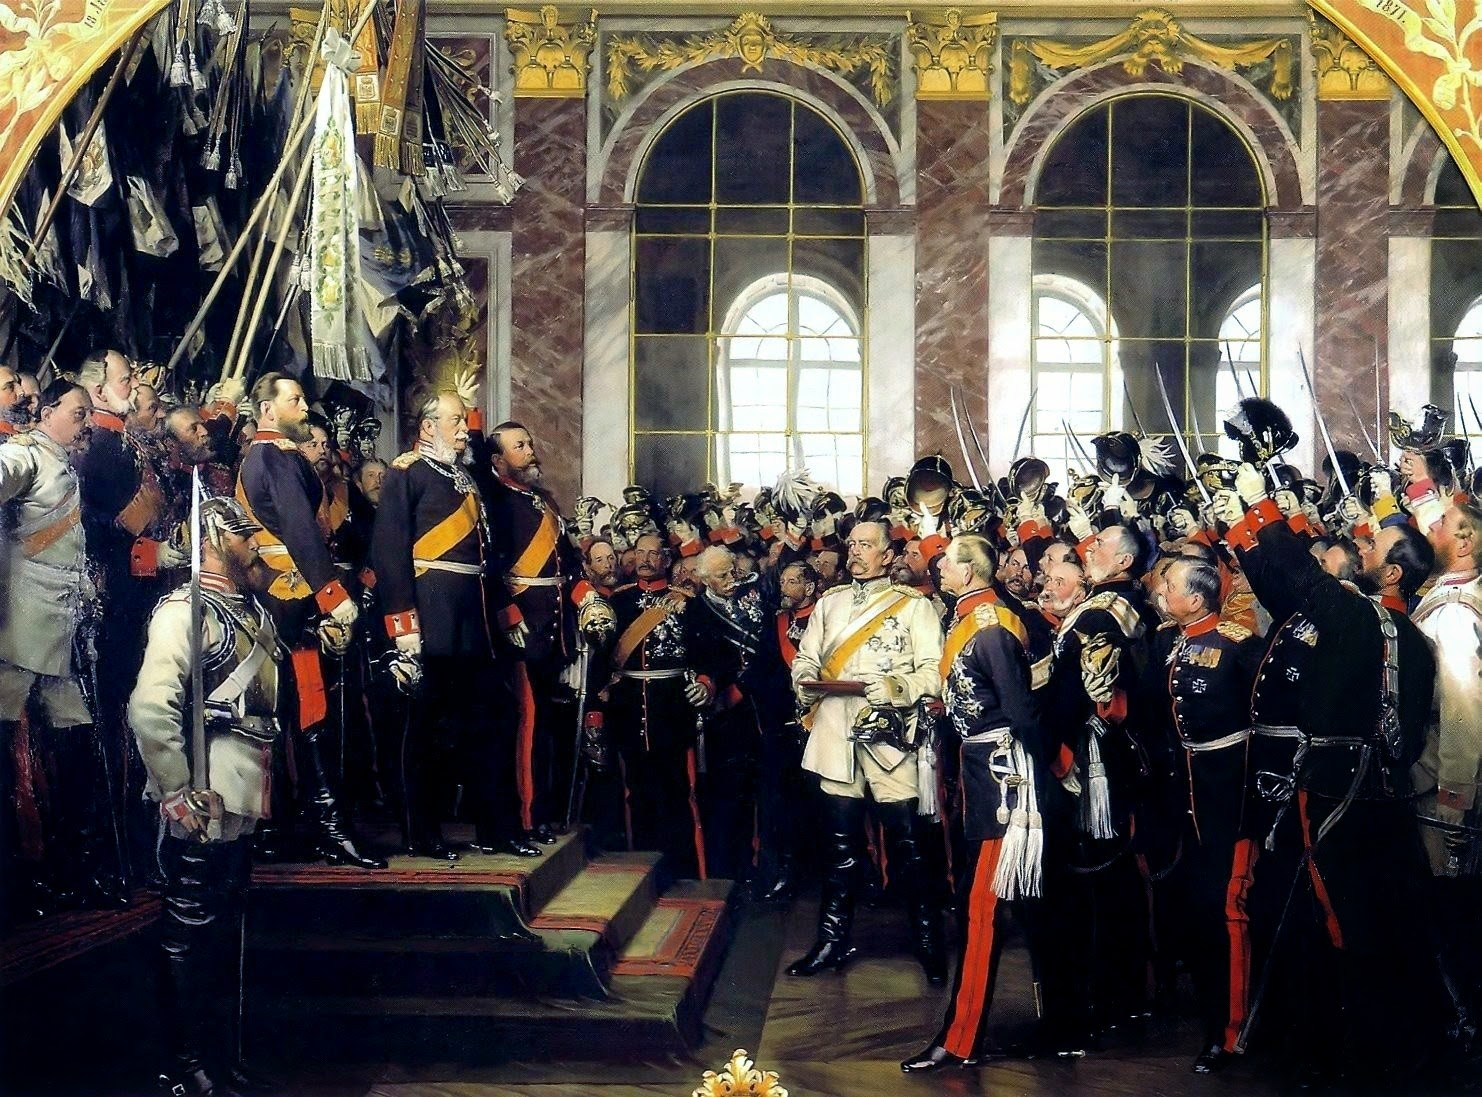 Proclamation of Prussian king Wilhelm I as German Emperor at Versailles in 1871